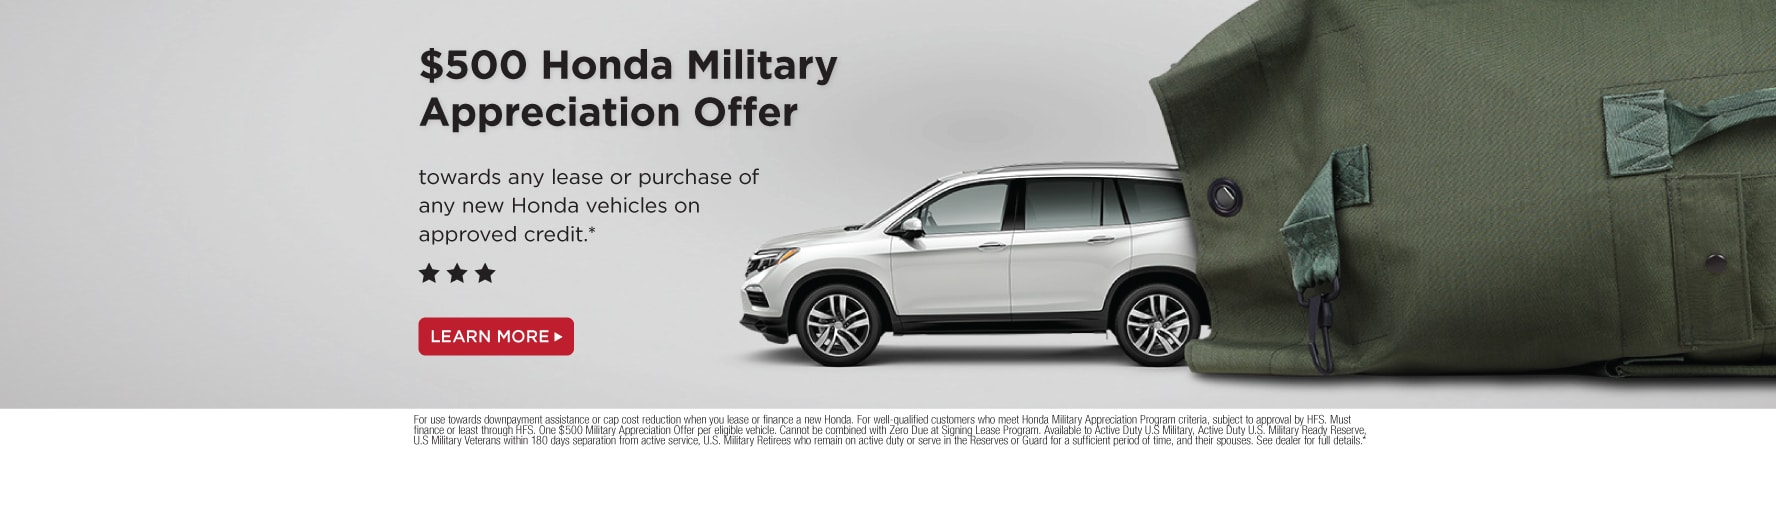 Dch Honda Of Mission Valley New Used Dealer In San Diego Ca Online Store 2004 Crv Exhaust Pipe Muffler Parts 1 2 3 4 5 6 7 8 9 10 11 12 13 14 15 16